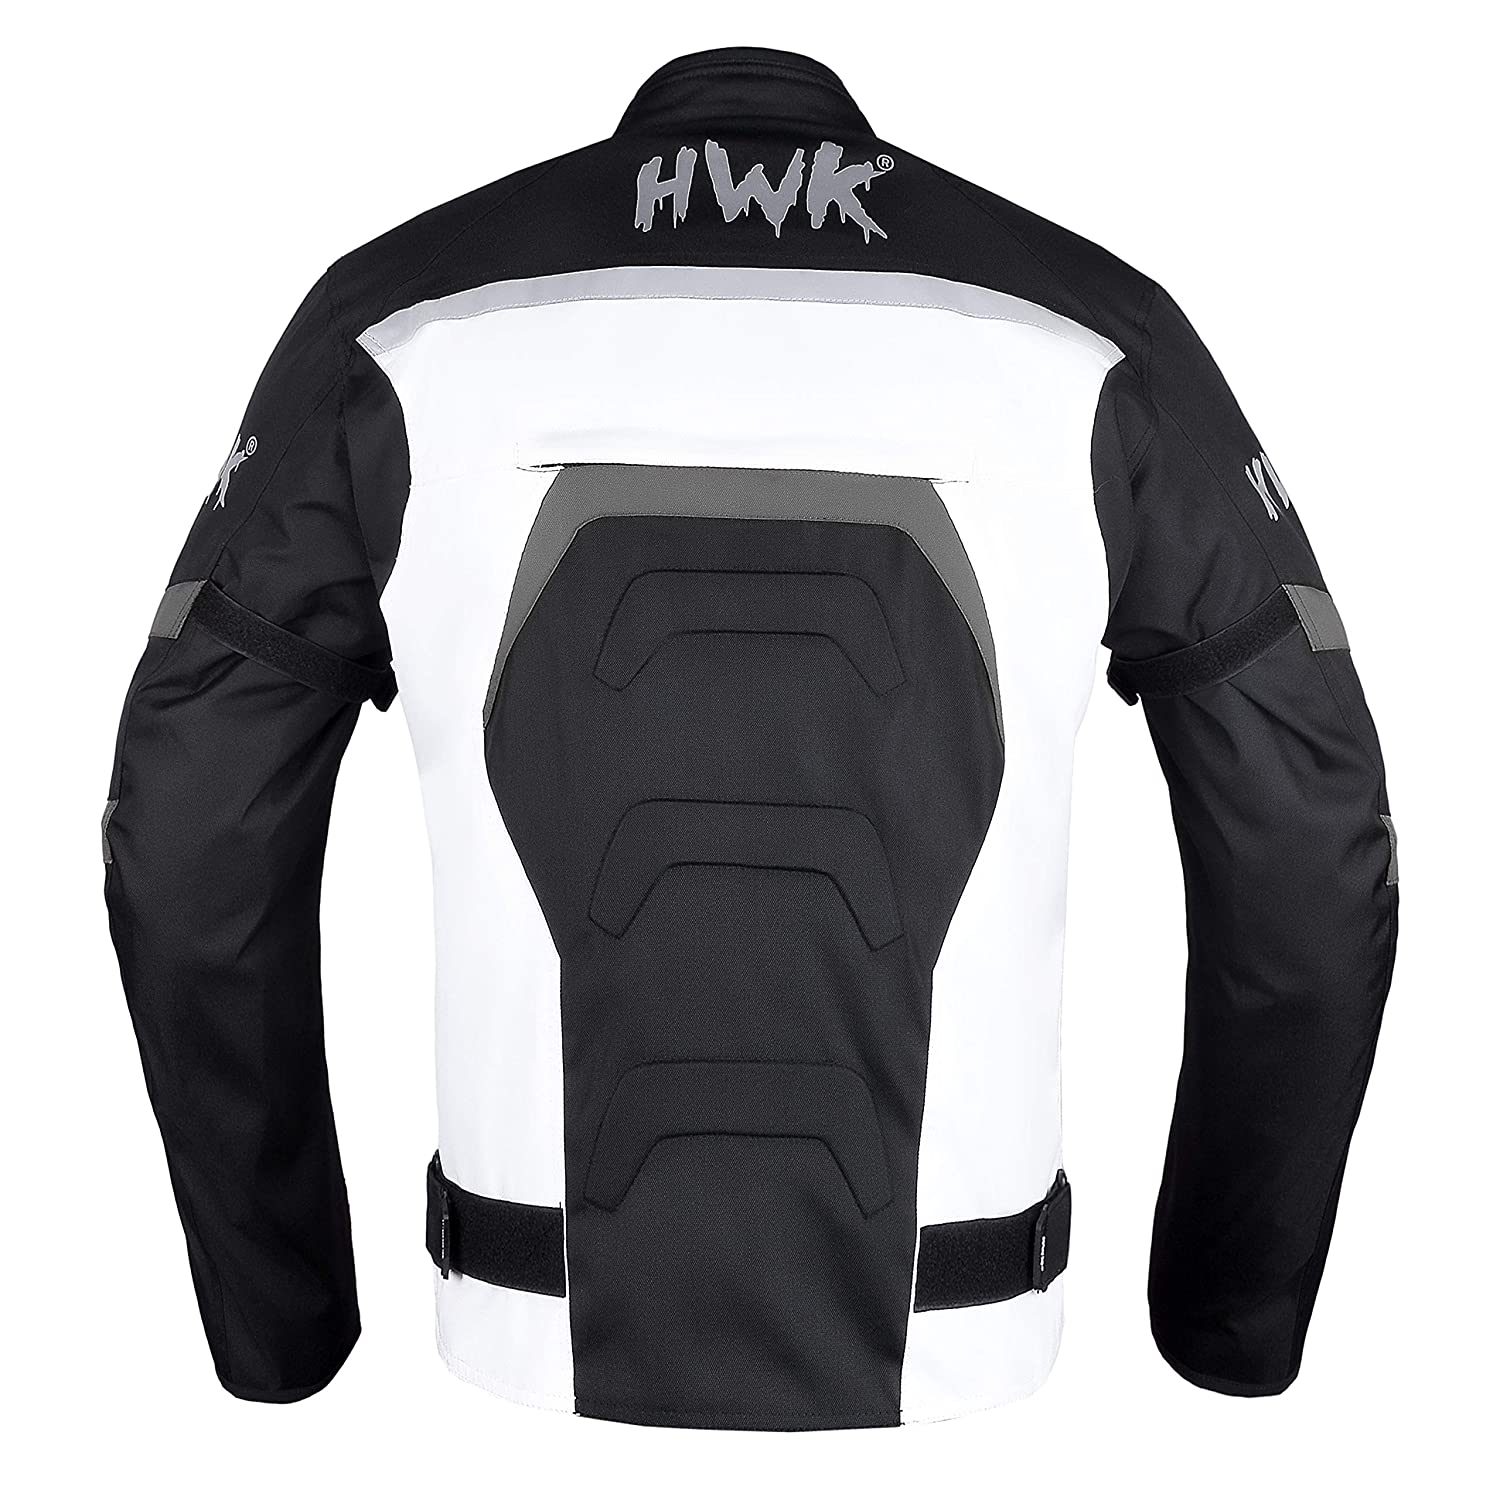 HWK Textile Motorcycle Jacket Motorbike Jacket Biker Riding Jacket Cordura Waterproof CE Armoured Breathable Reissa Membrane Removable Thermal lining Small, Blue 1 YEAR WARRANTY!!